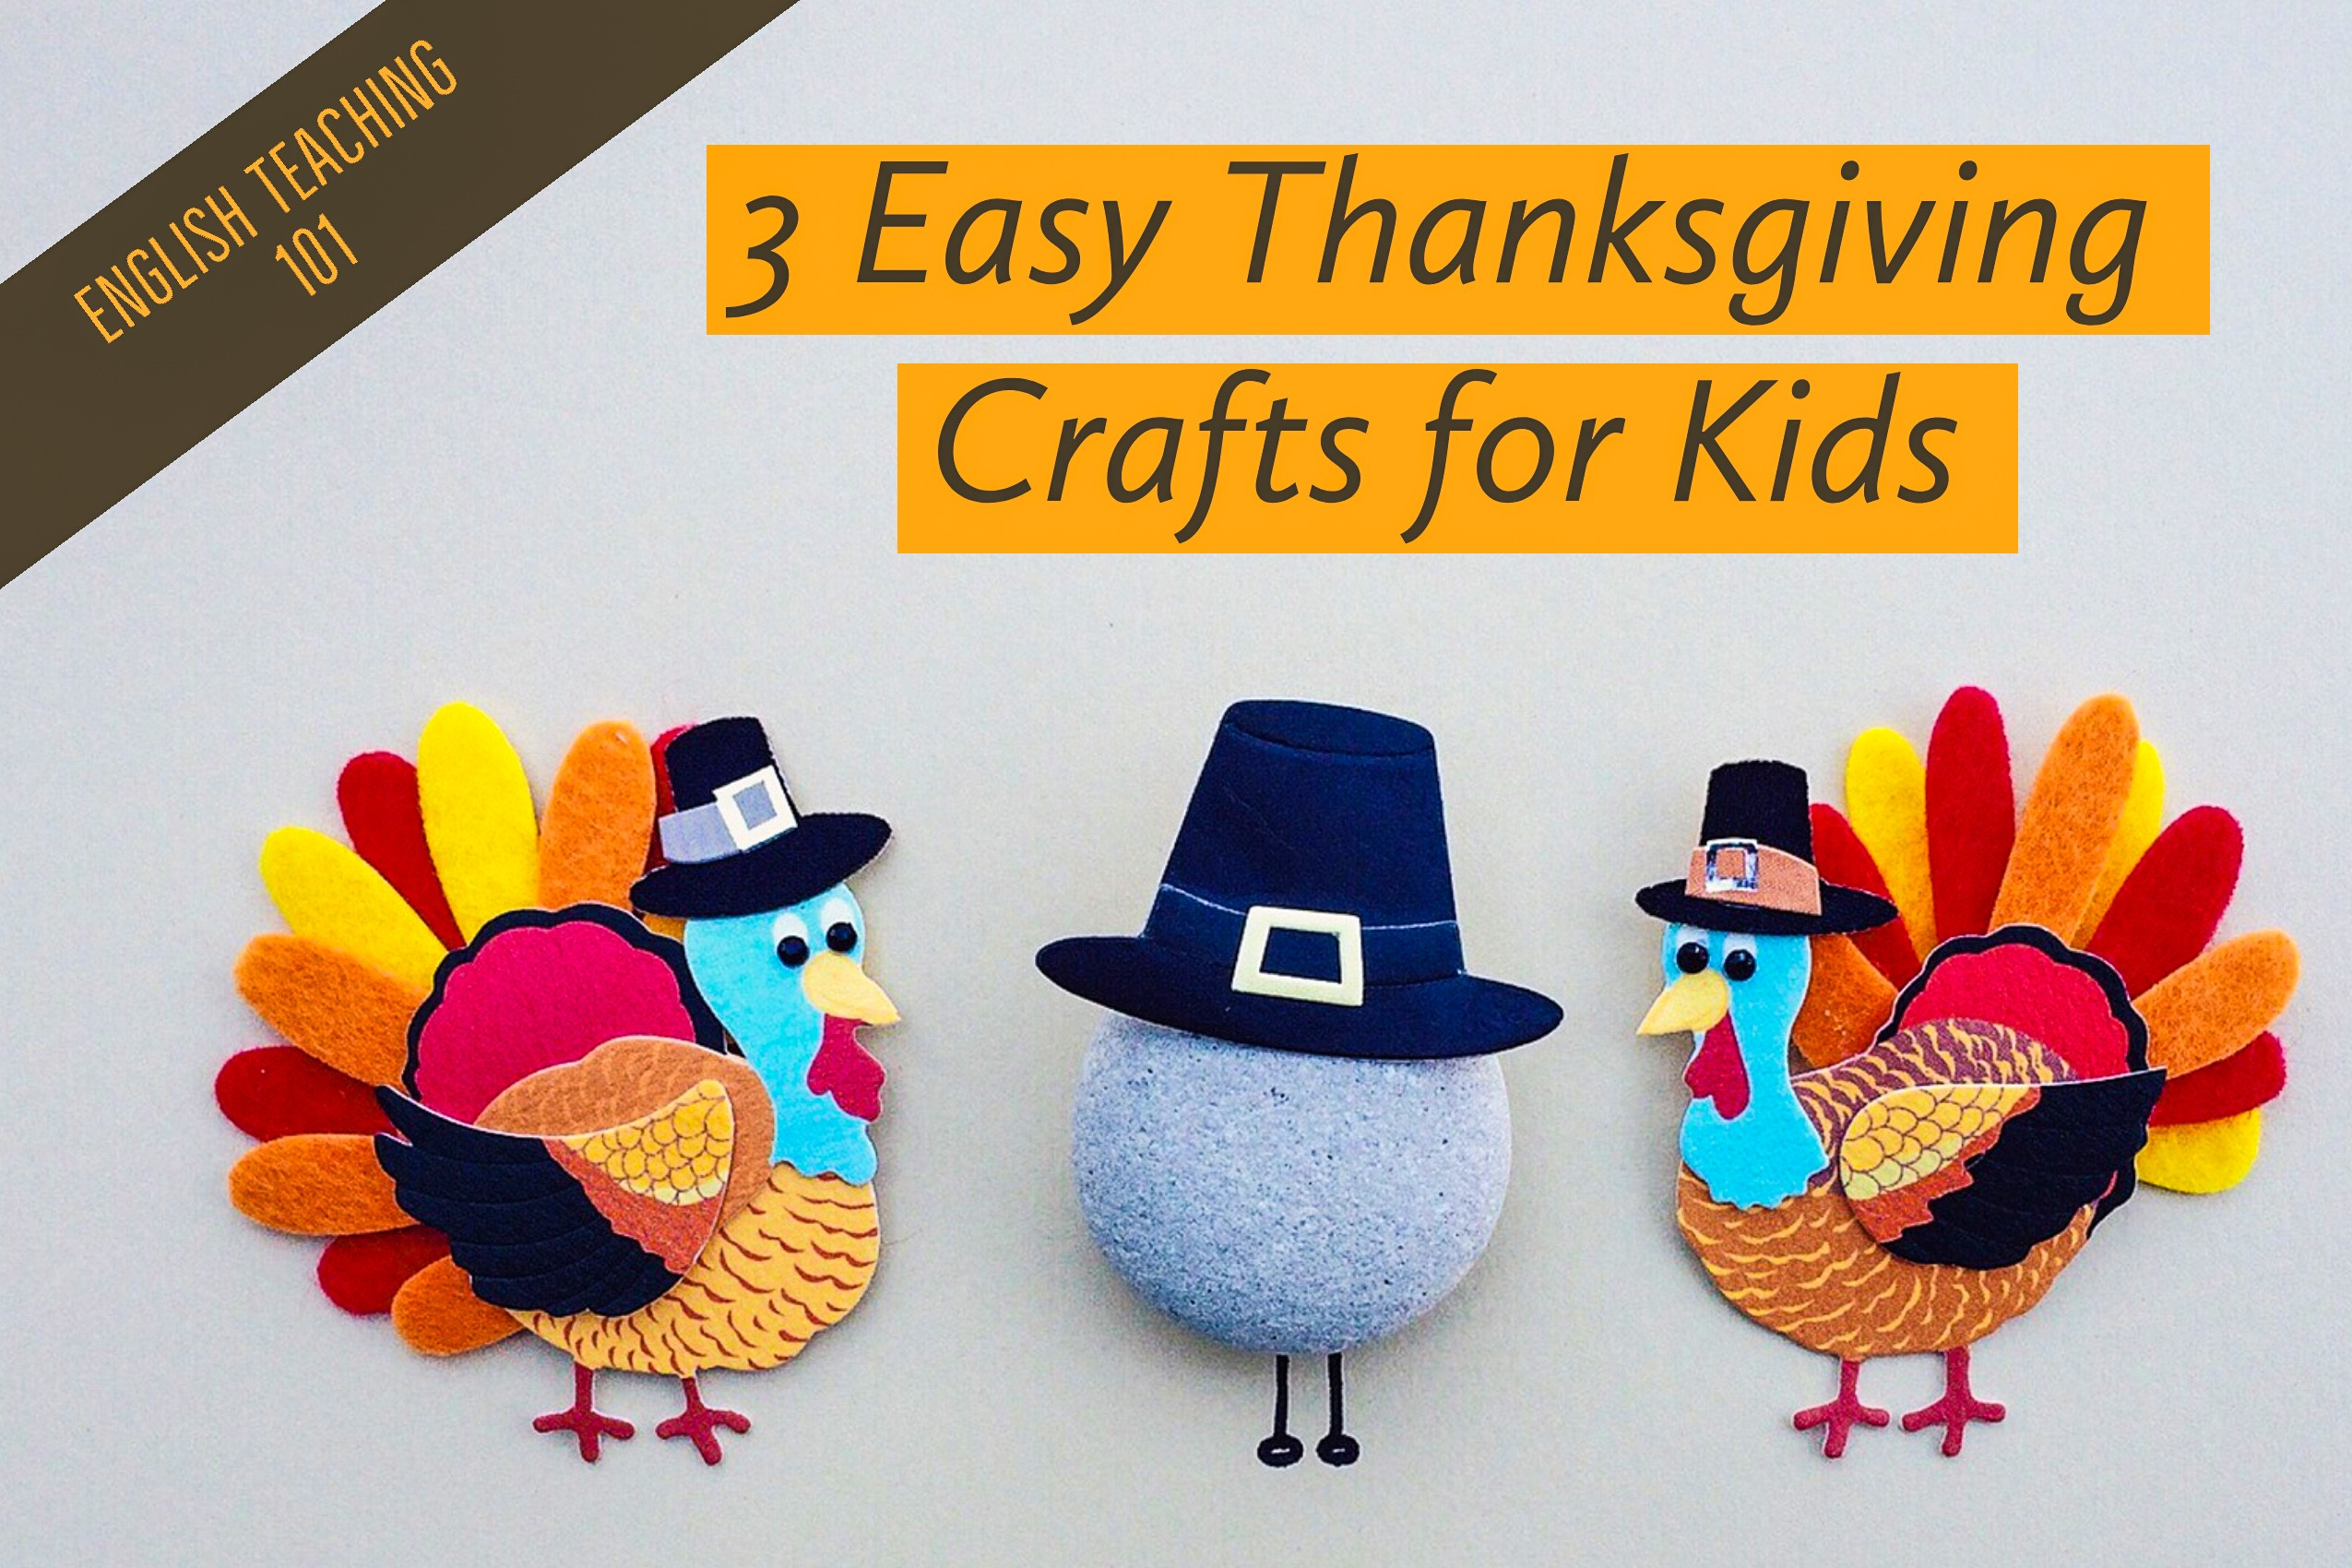 3 Easy Thanksgiving Crafts For Kids